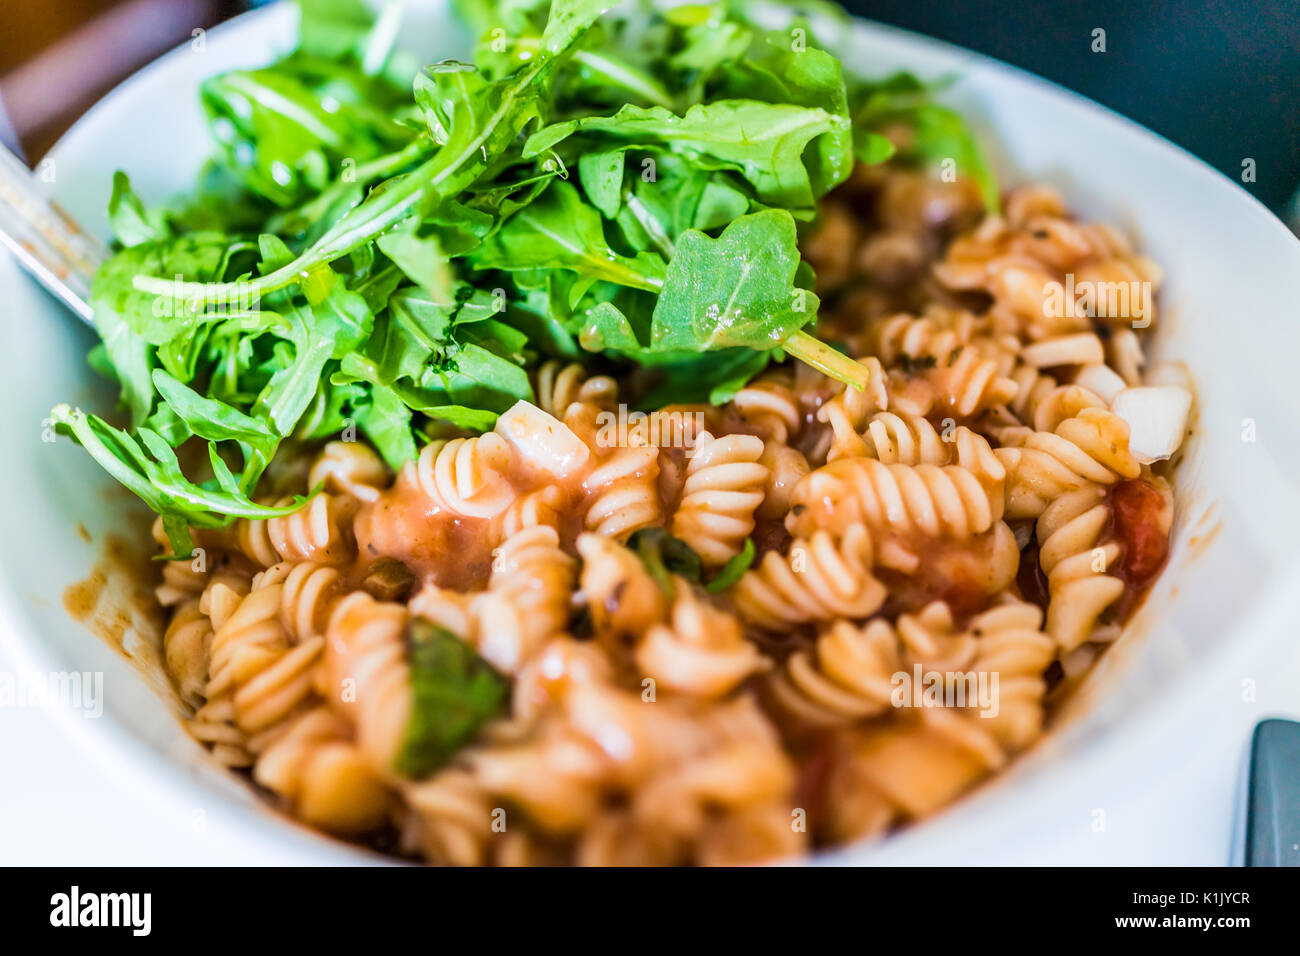 Closeup of brown rice fusilli pasta bowl in marinara sauce with arugula greens Stock Photo